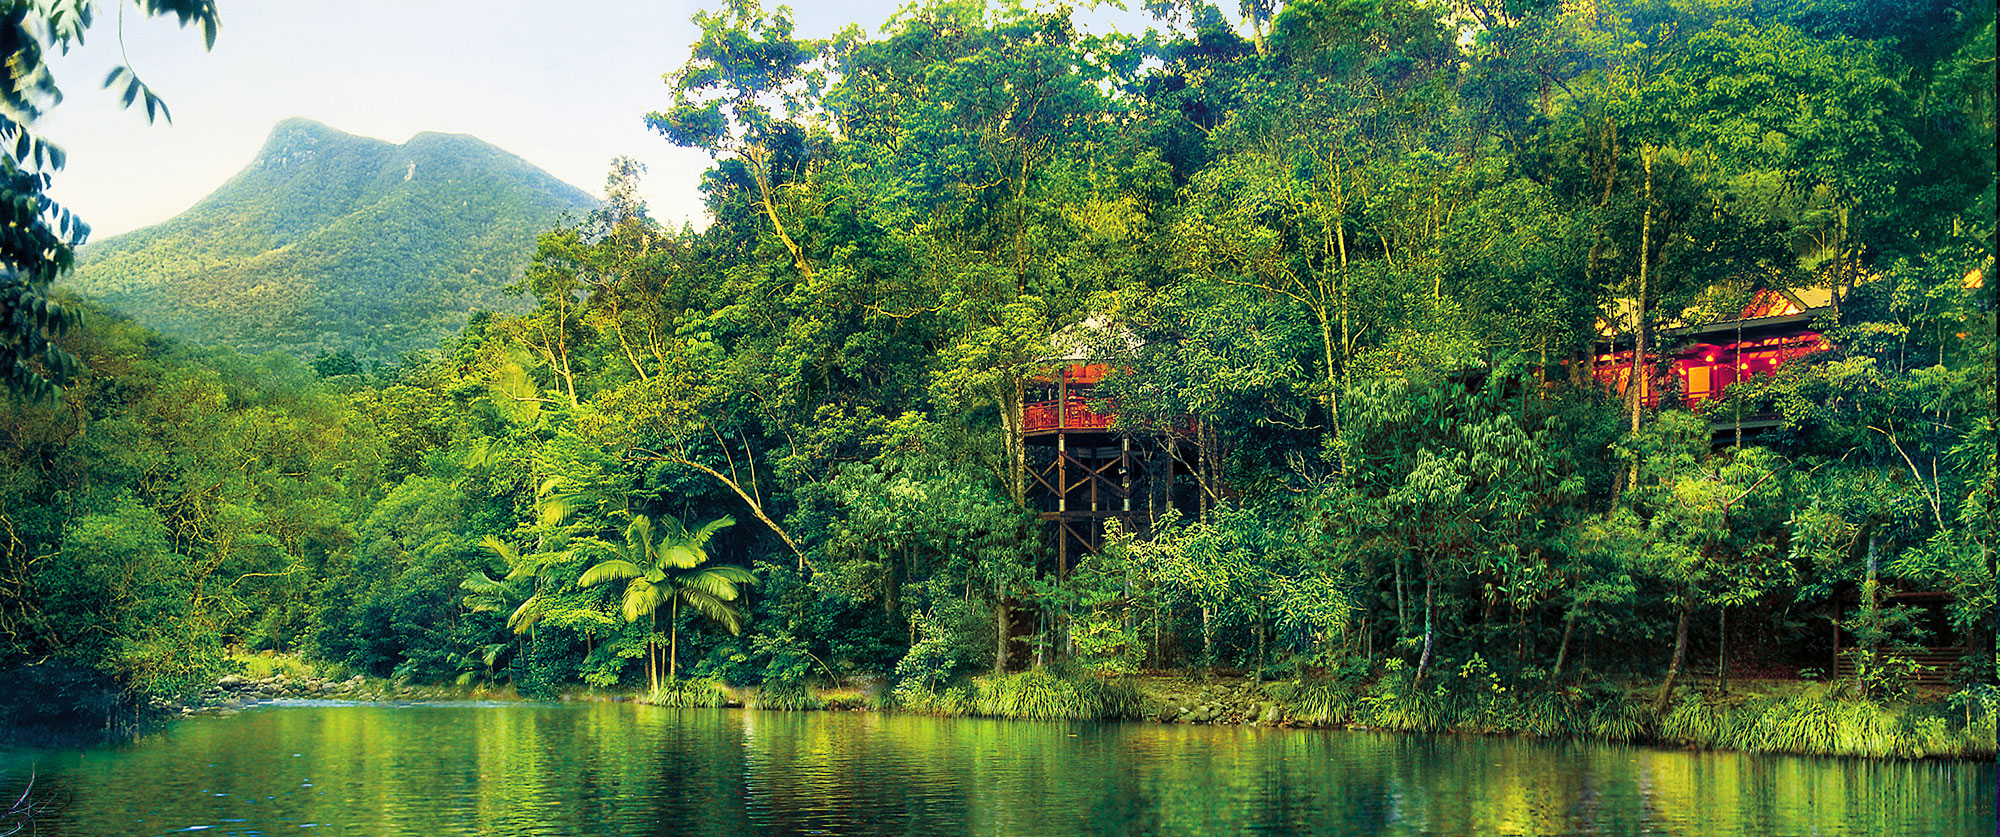 Australia Vacations - Great Barrier Reef Daintree Rainforest Treehouse